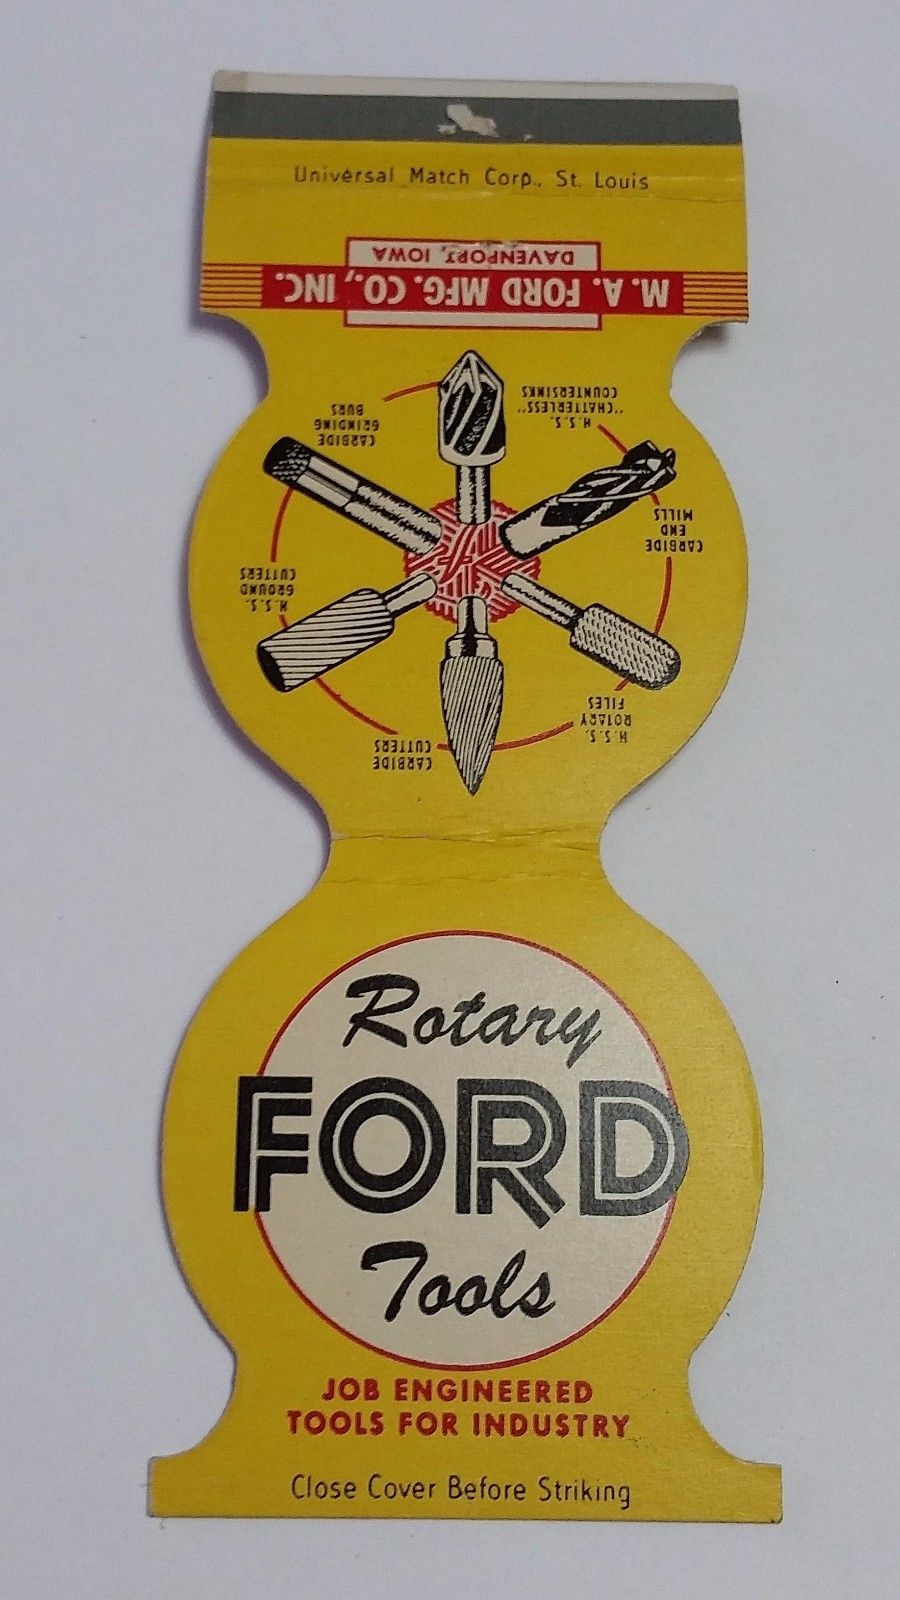 M.A. Ford Mfg. Co. Davenport, IA. FORD Rotary Tools #frontstriker #contour #Jewelite #matchcover  To Order your business' own branded #matchbooks or #matchboxes GoTo: www.GetMatches.com or CALL 800.605.7331 To Get The Process Started Today!